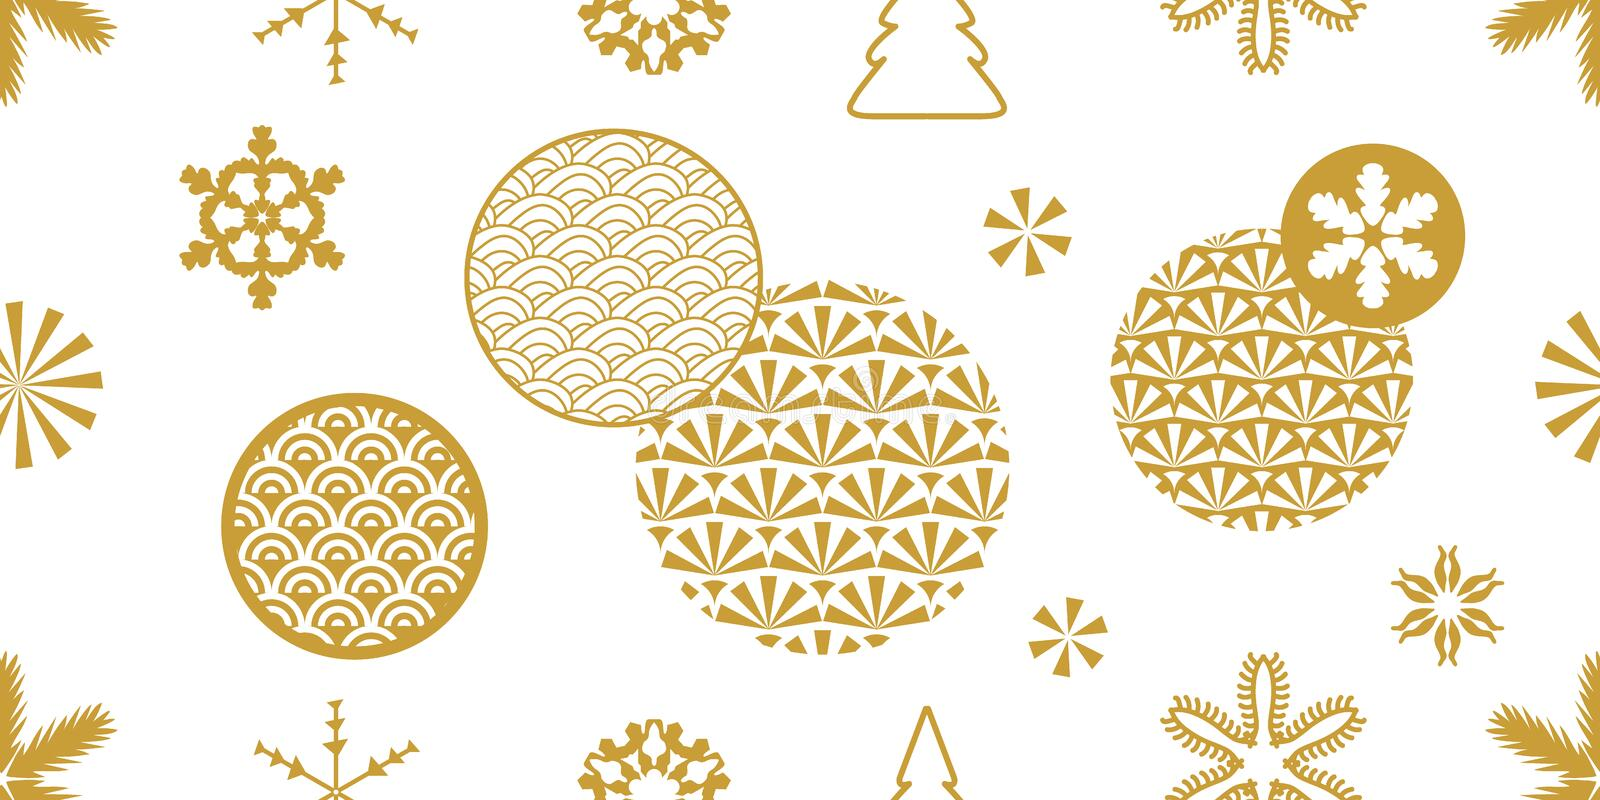 Seamless vector background with ornate circles. royalty free stock photography